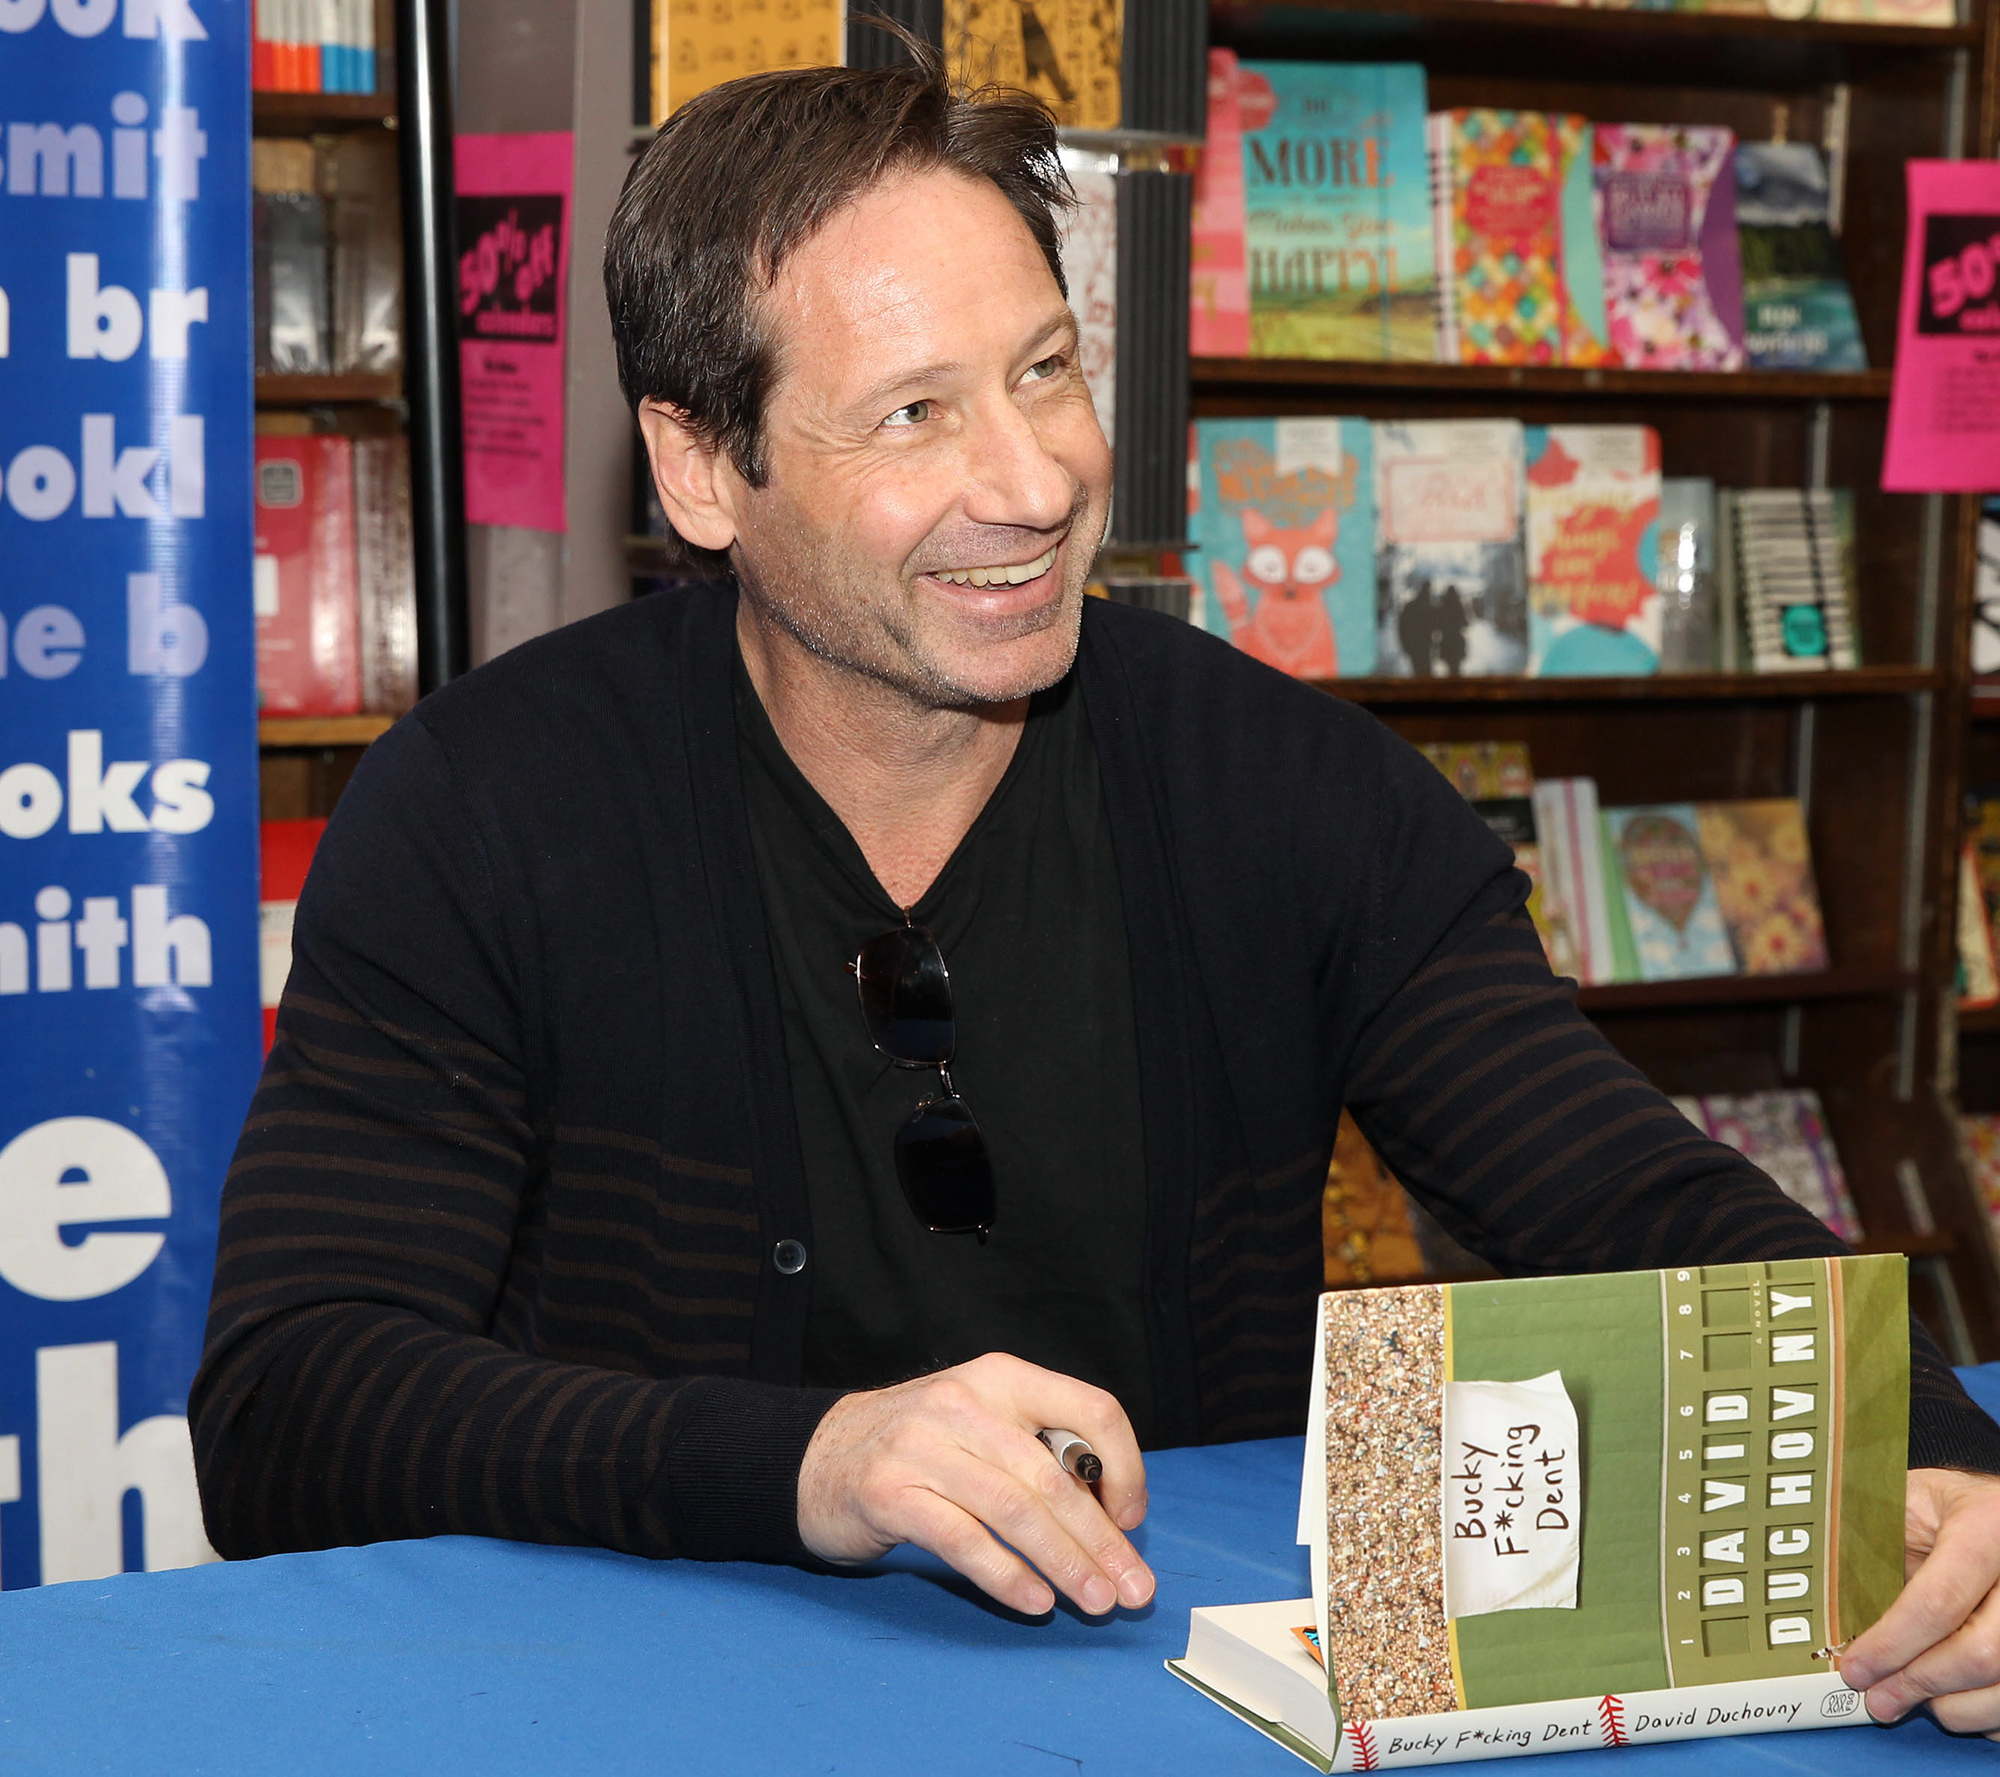 David Duchovny Signing Copies Of His New Book